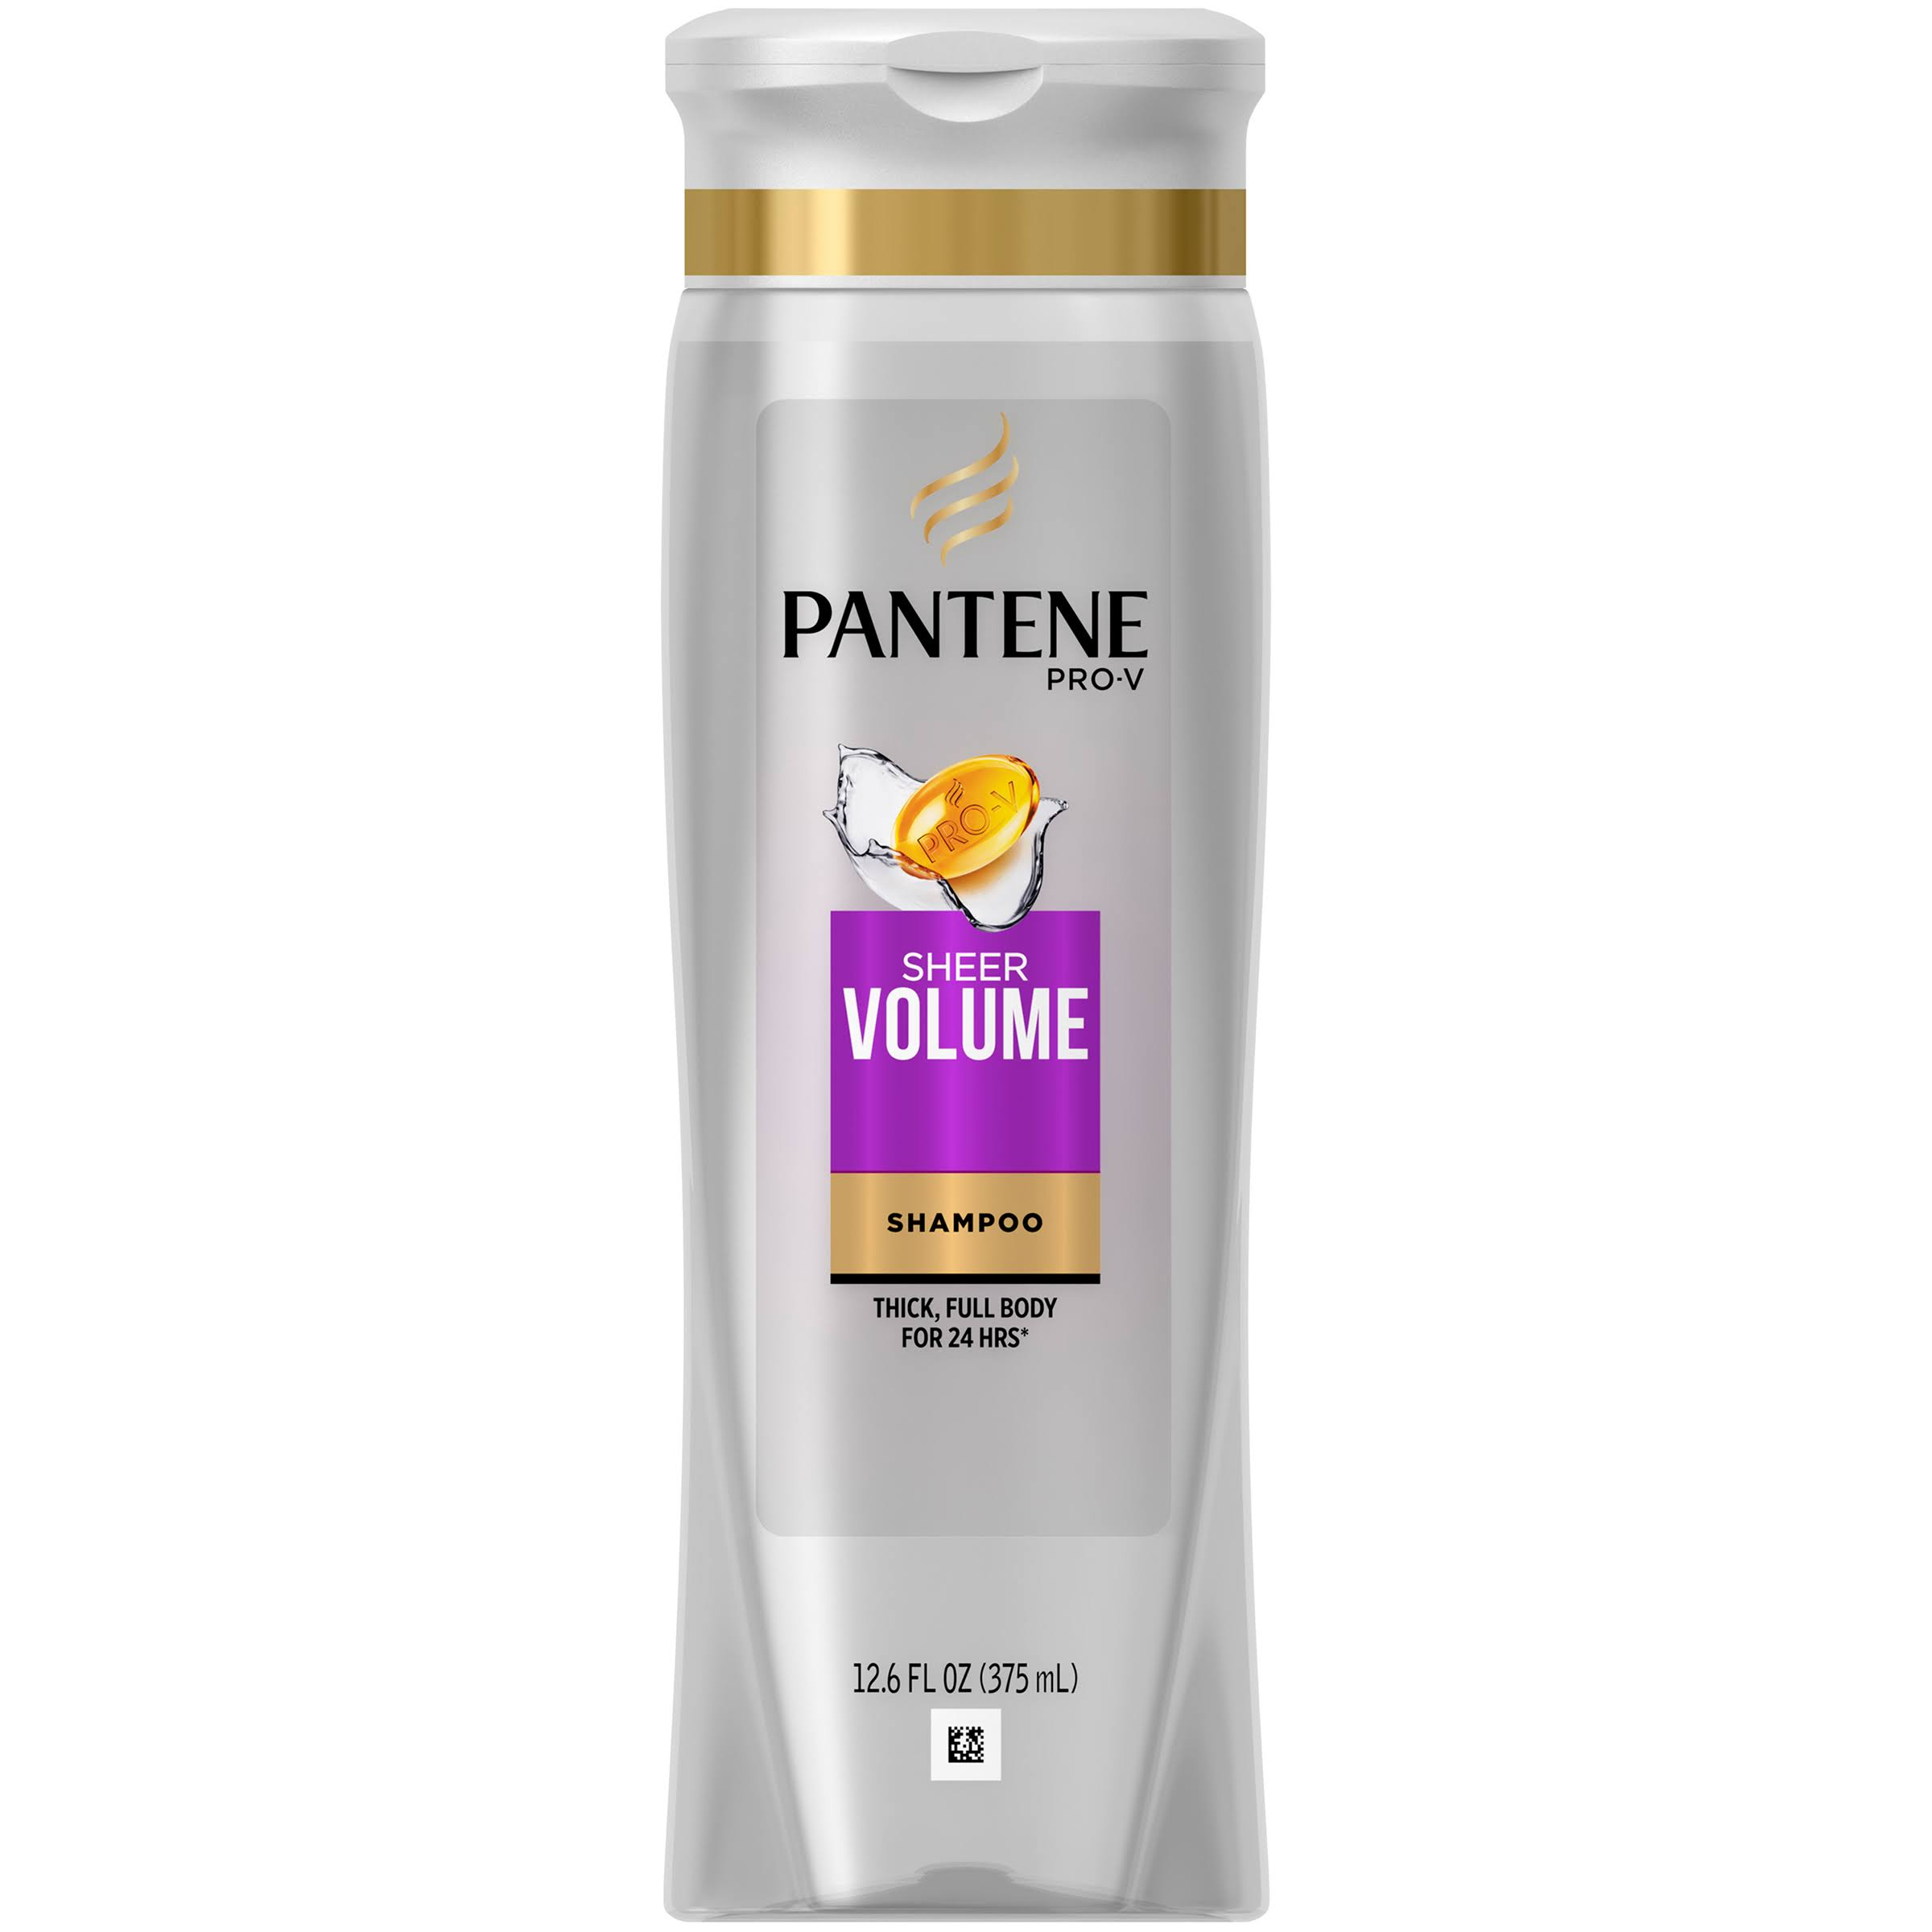 Pantene Pro V Dreamcare Sheer Volume Shampoo - 12.6oz